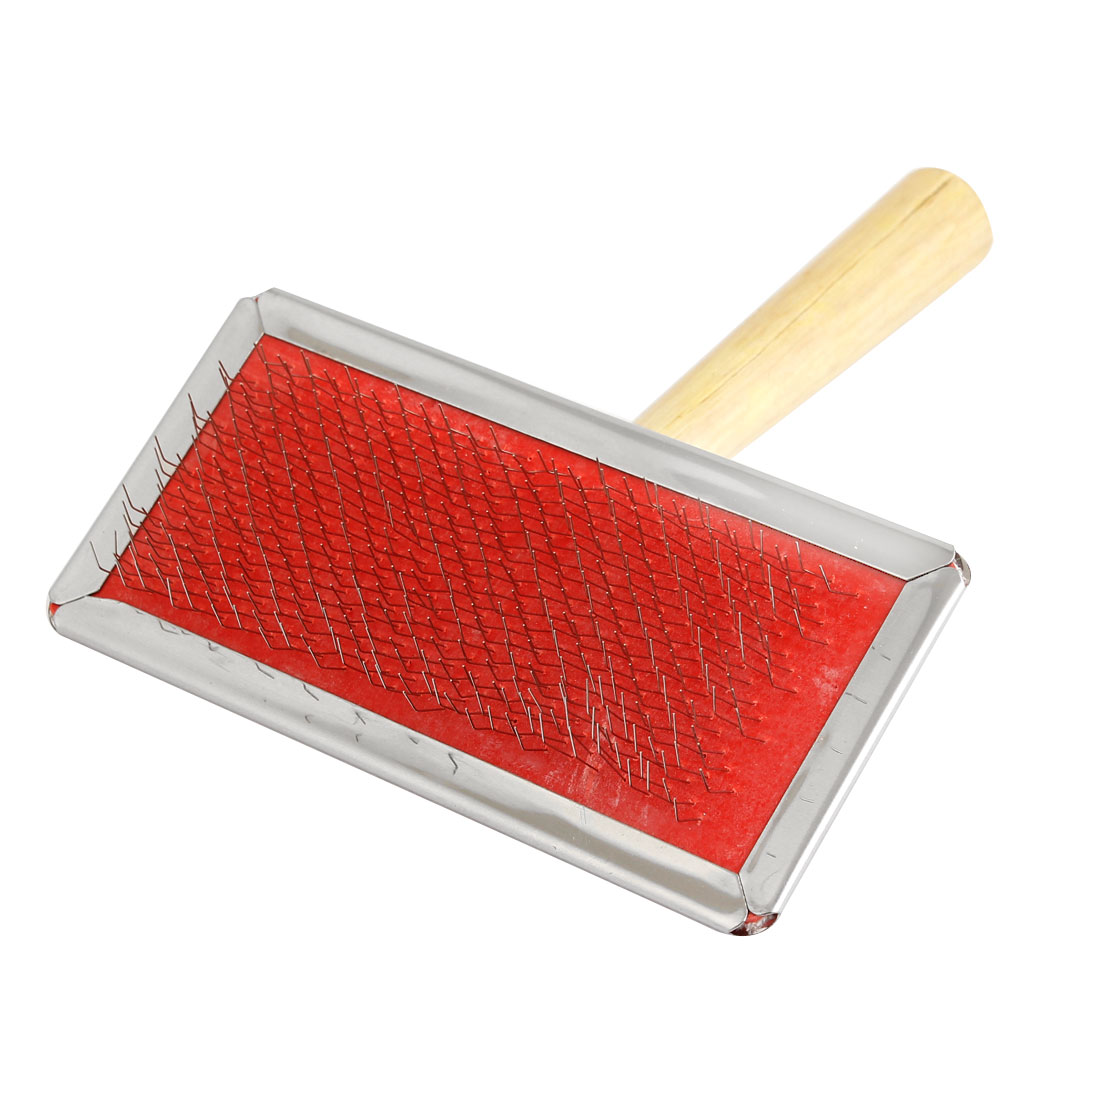 Wooden Grip Dog Cat Pet Fur Grooming Comb Brush Shedding Tool Red Silver Tone